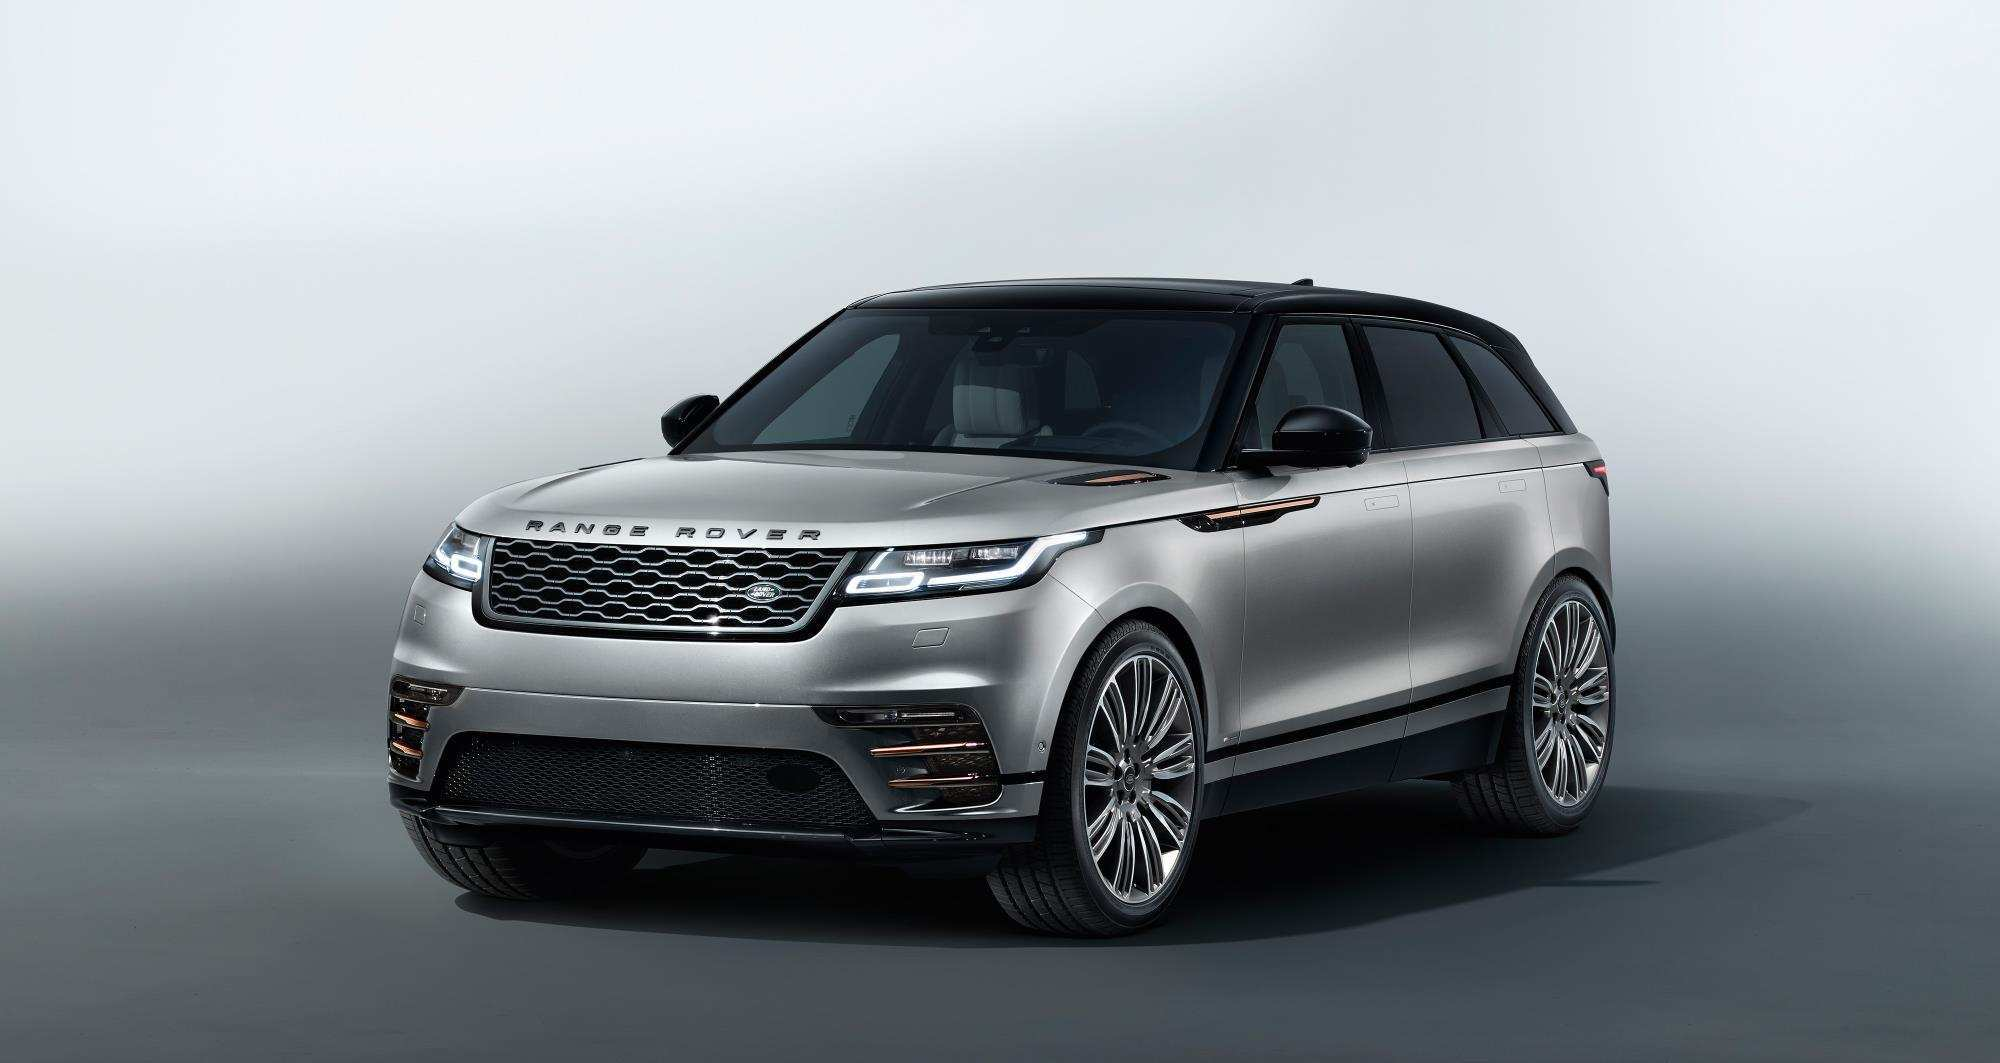 43 New Land Rover Electric Cars 2020 Performance and New Engine with Land Rover Electric Cars 2020